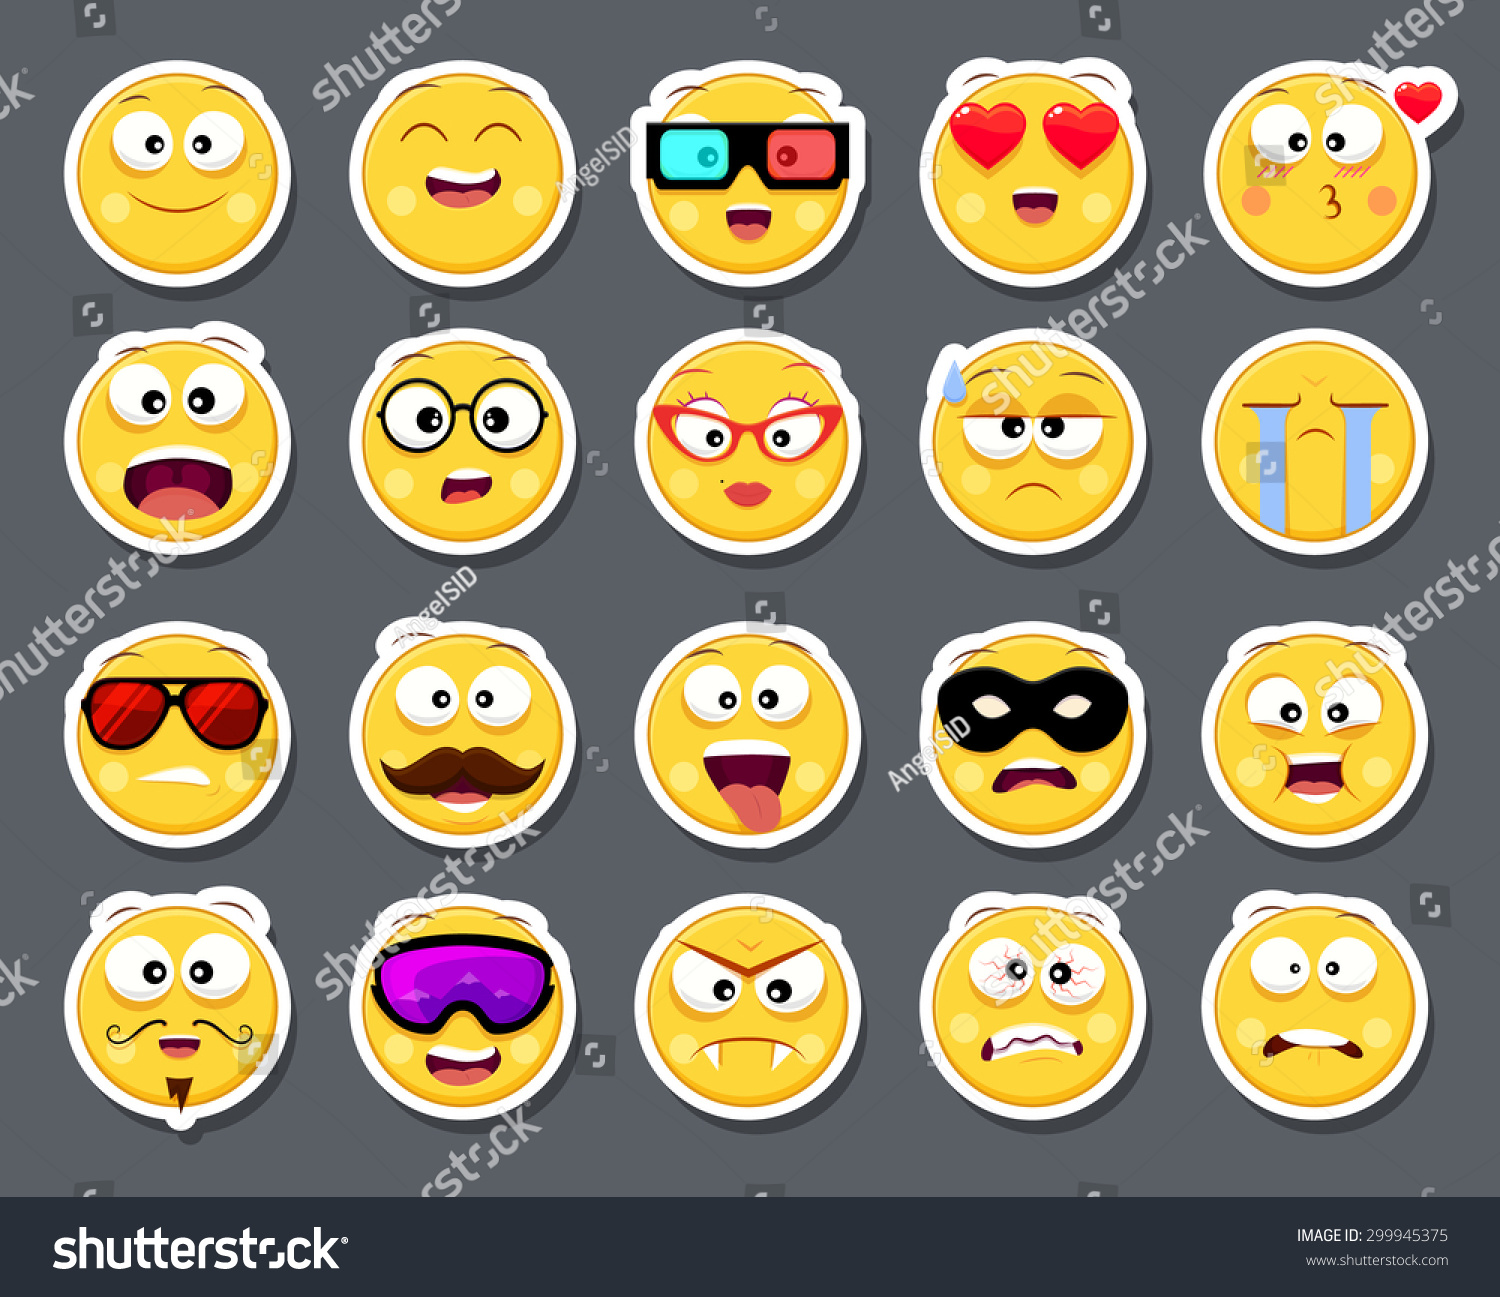 Set 20 Cute Smiley Faces Stickers Stock Vector Hd Royalty Free